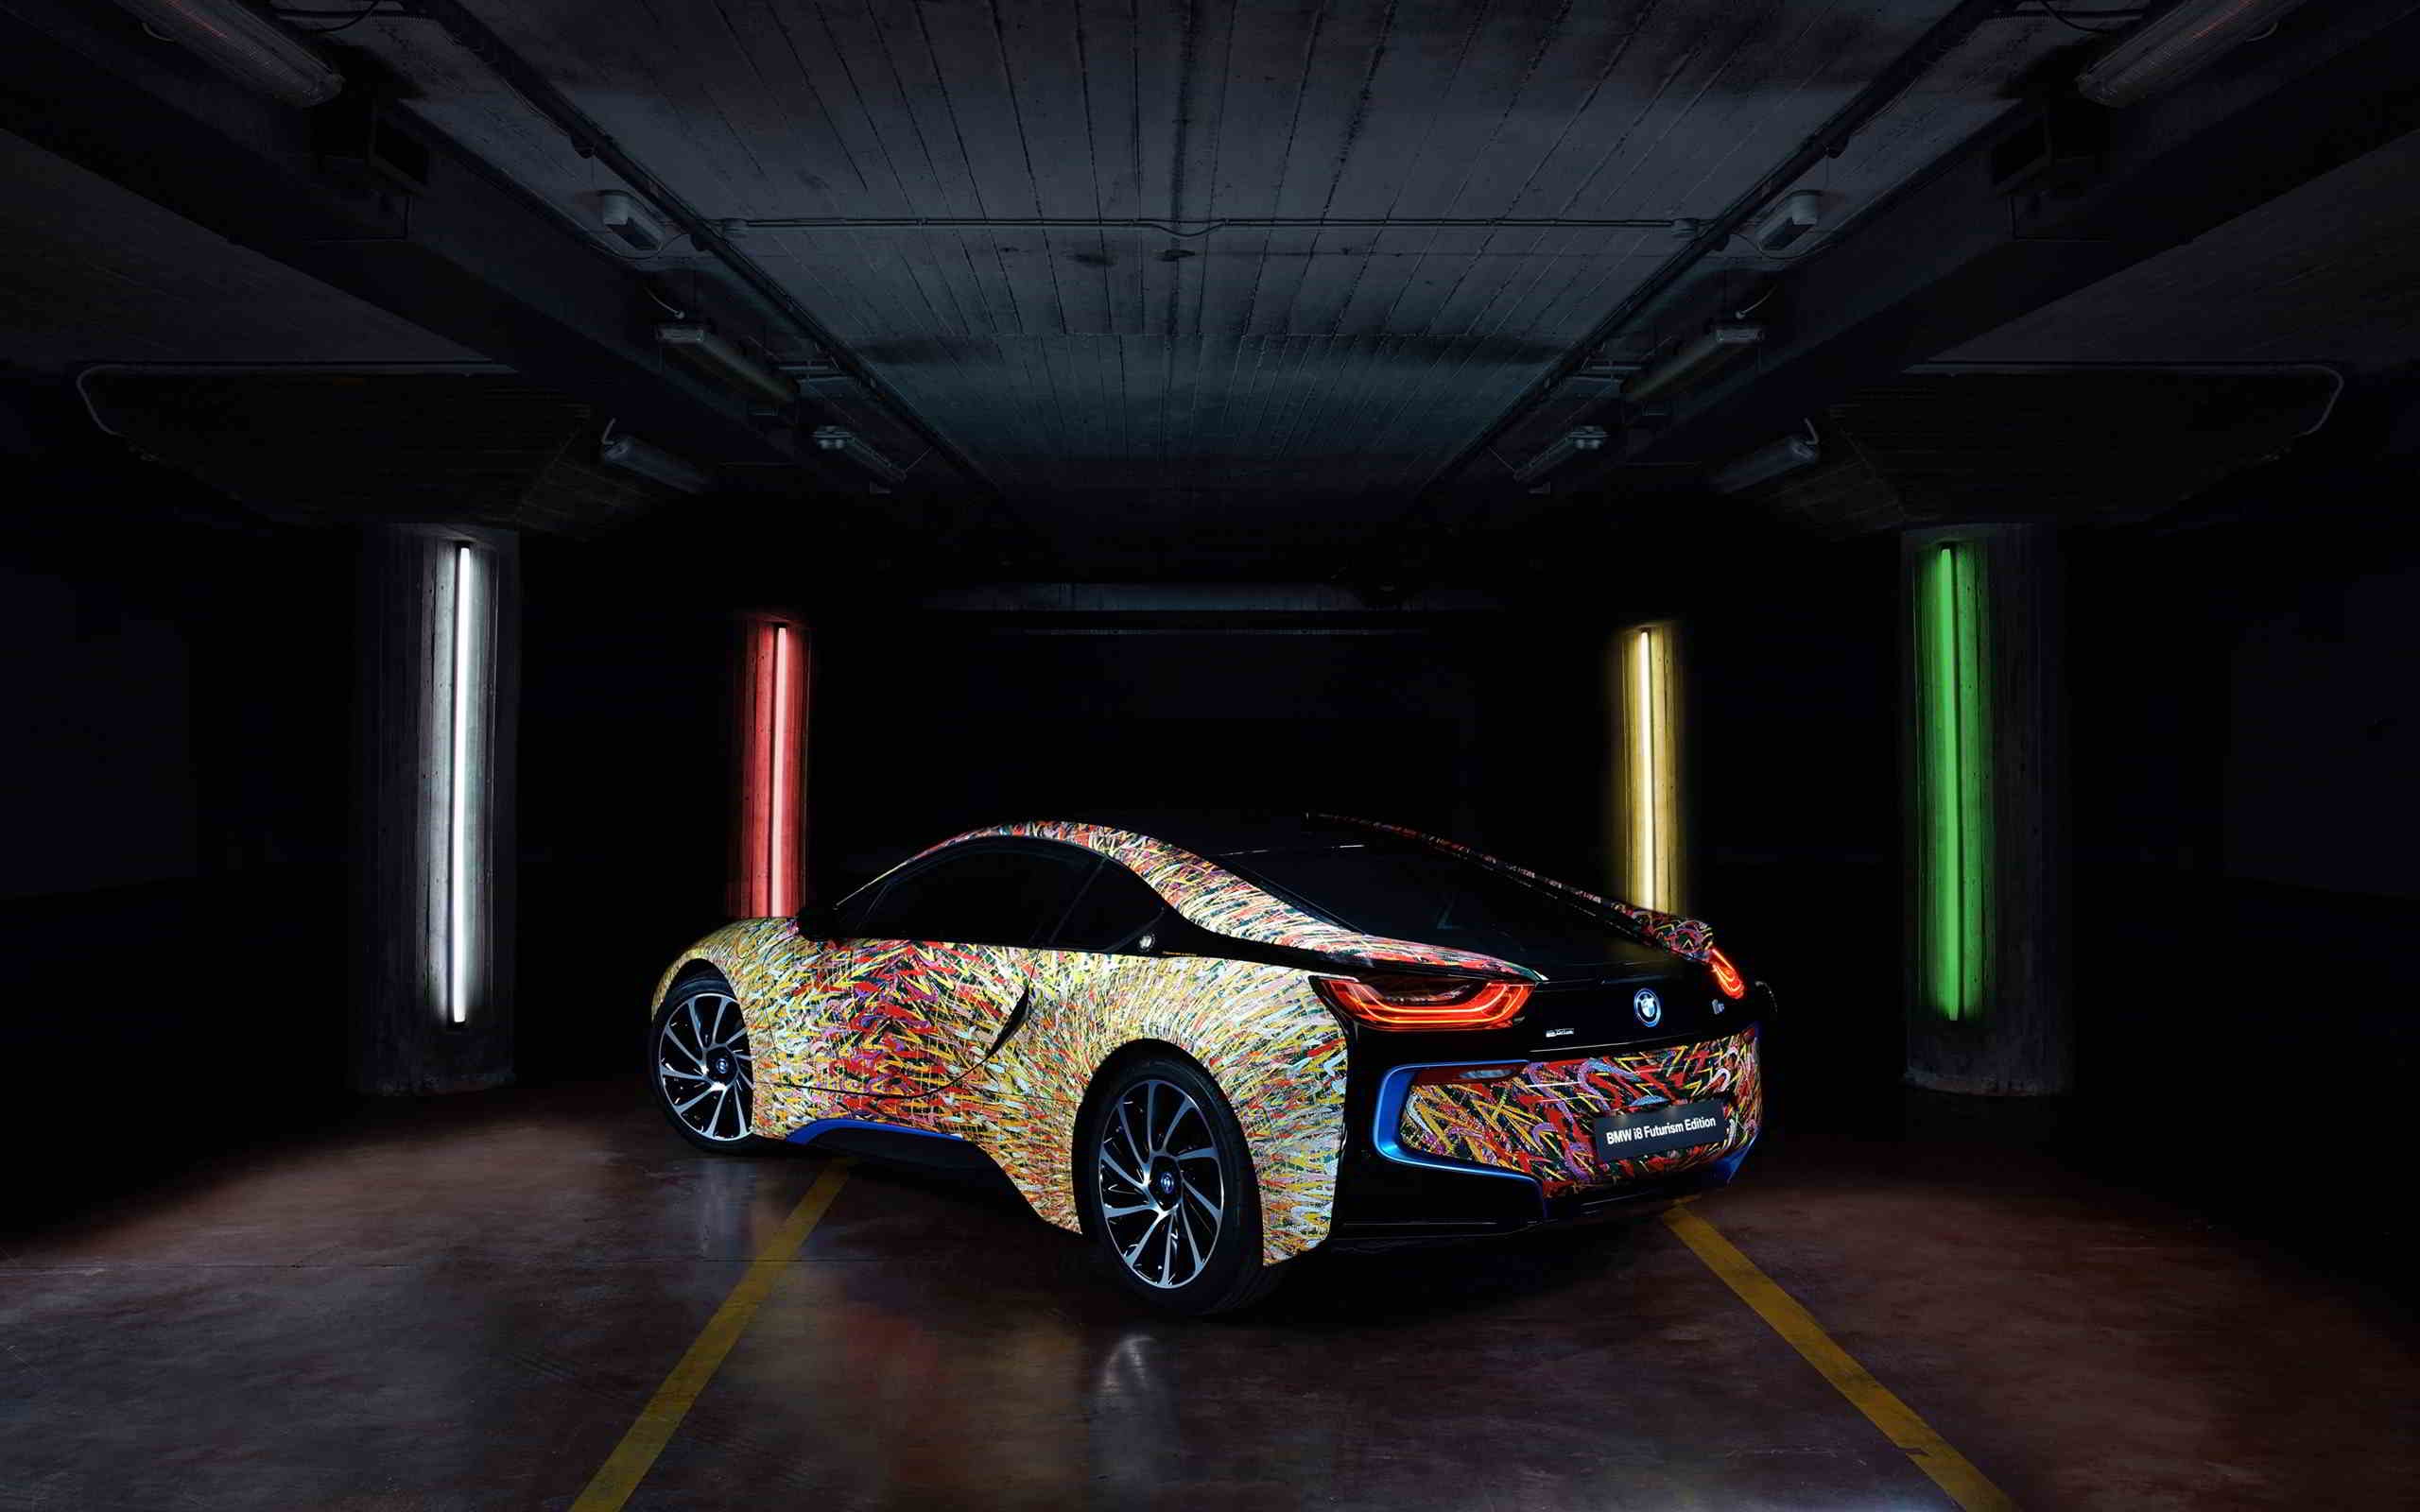 bmw i8 futurism edition wallpaper 2